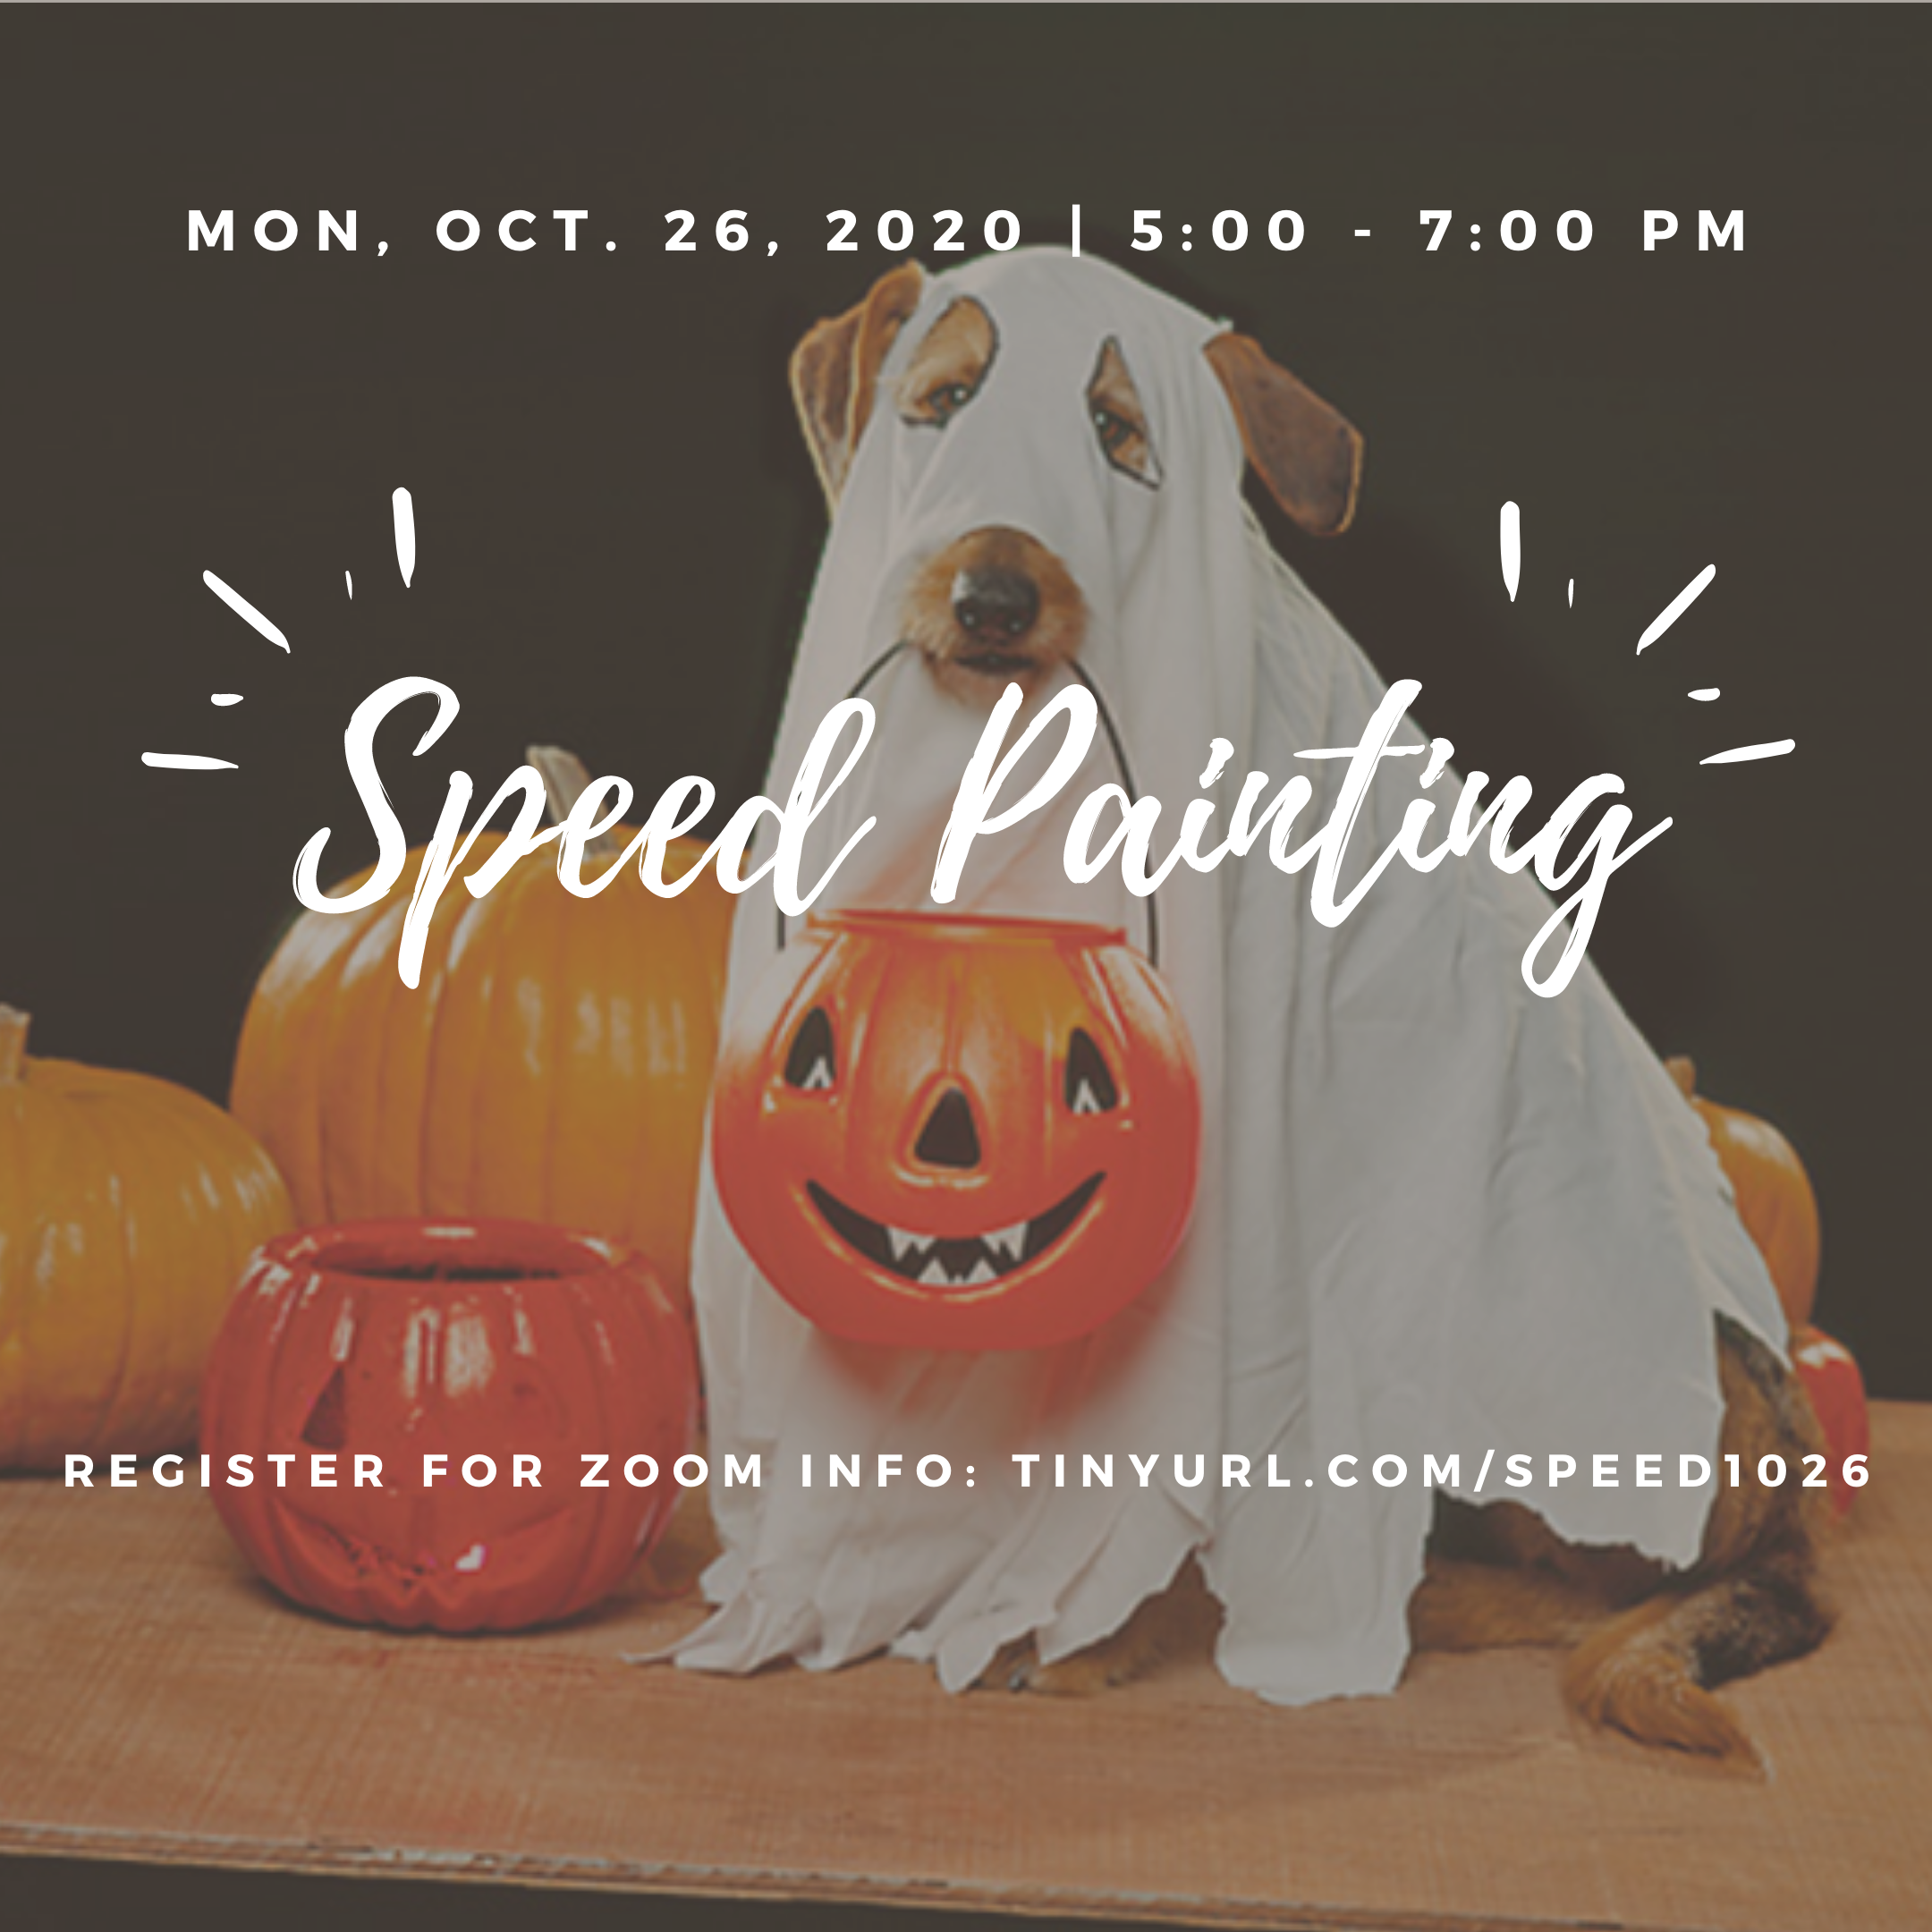 Halloween Speed Painting Event Poster